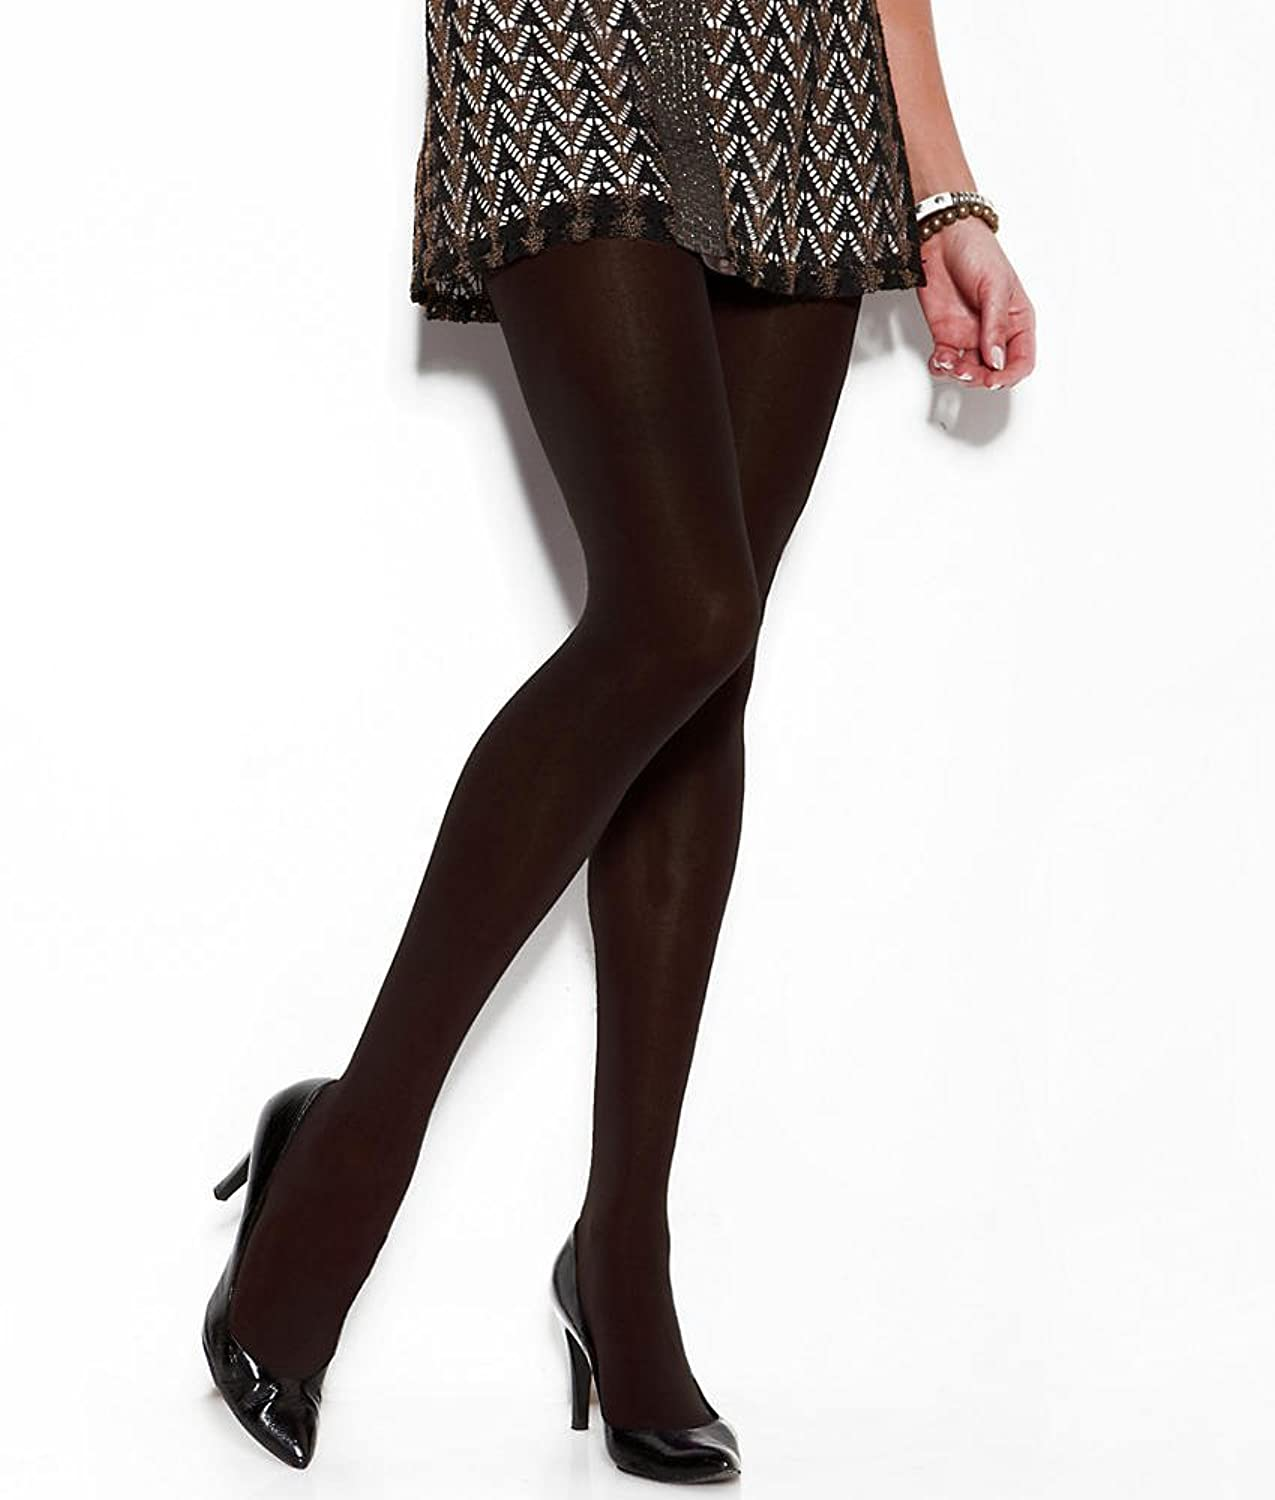 DKNY Opaque Tights 2-Pack, Plus Petite, Brown/Black